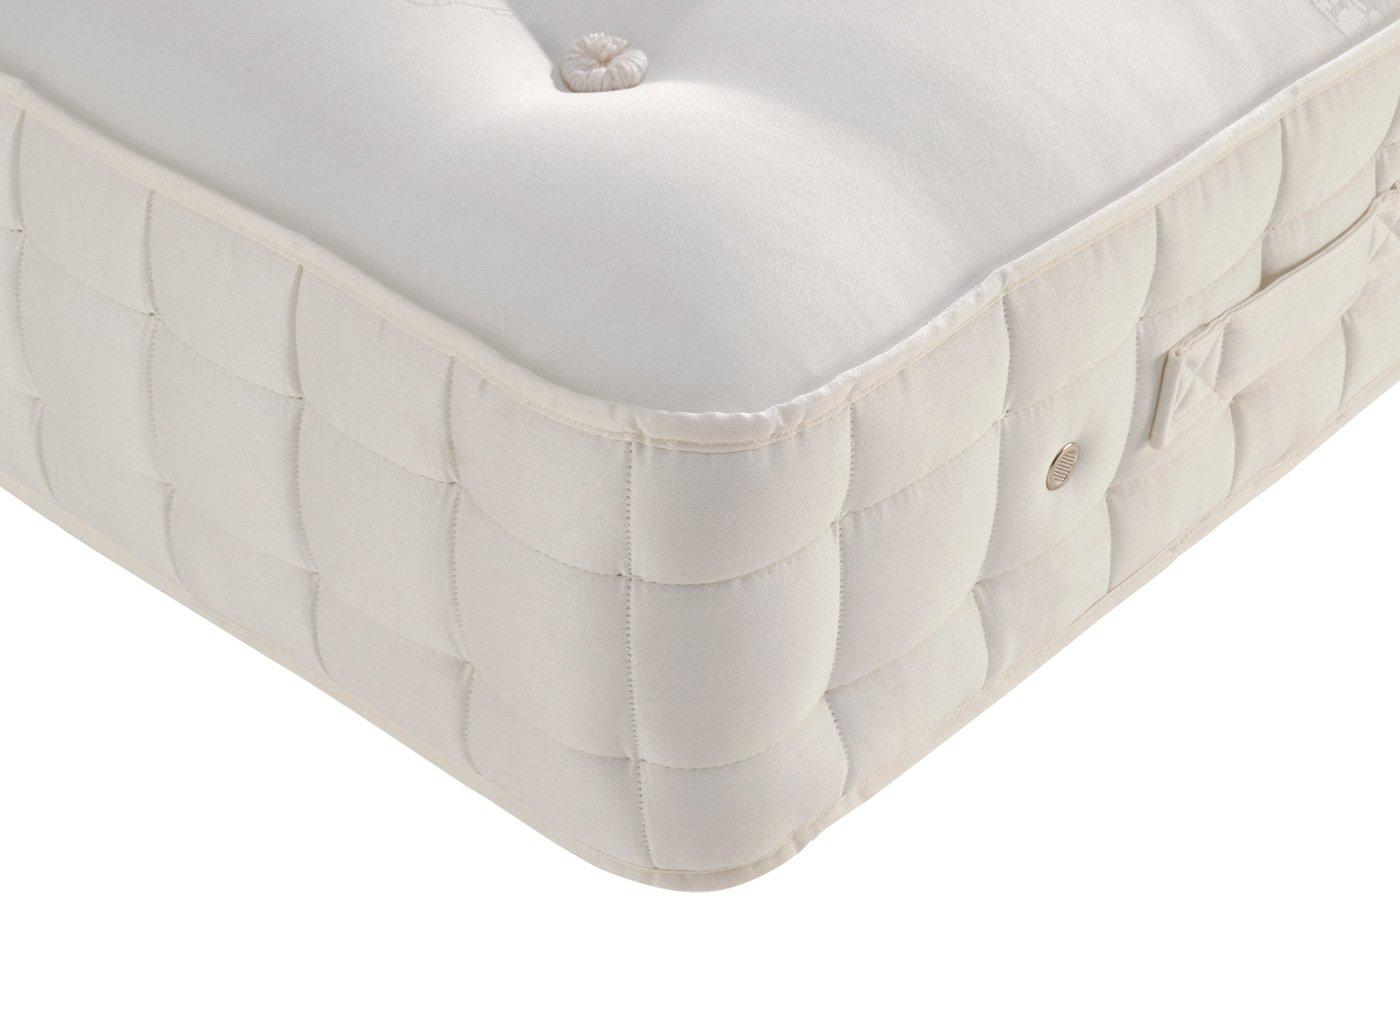 Hypnos Swinton Mattress 4'6 Double